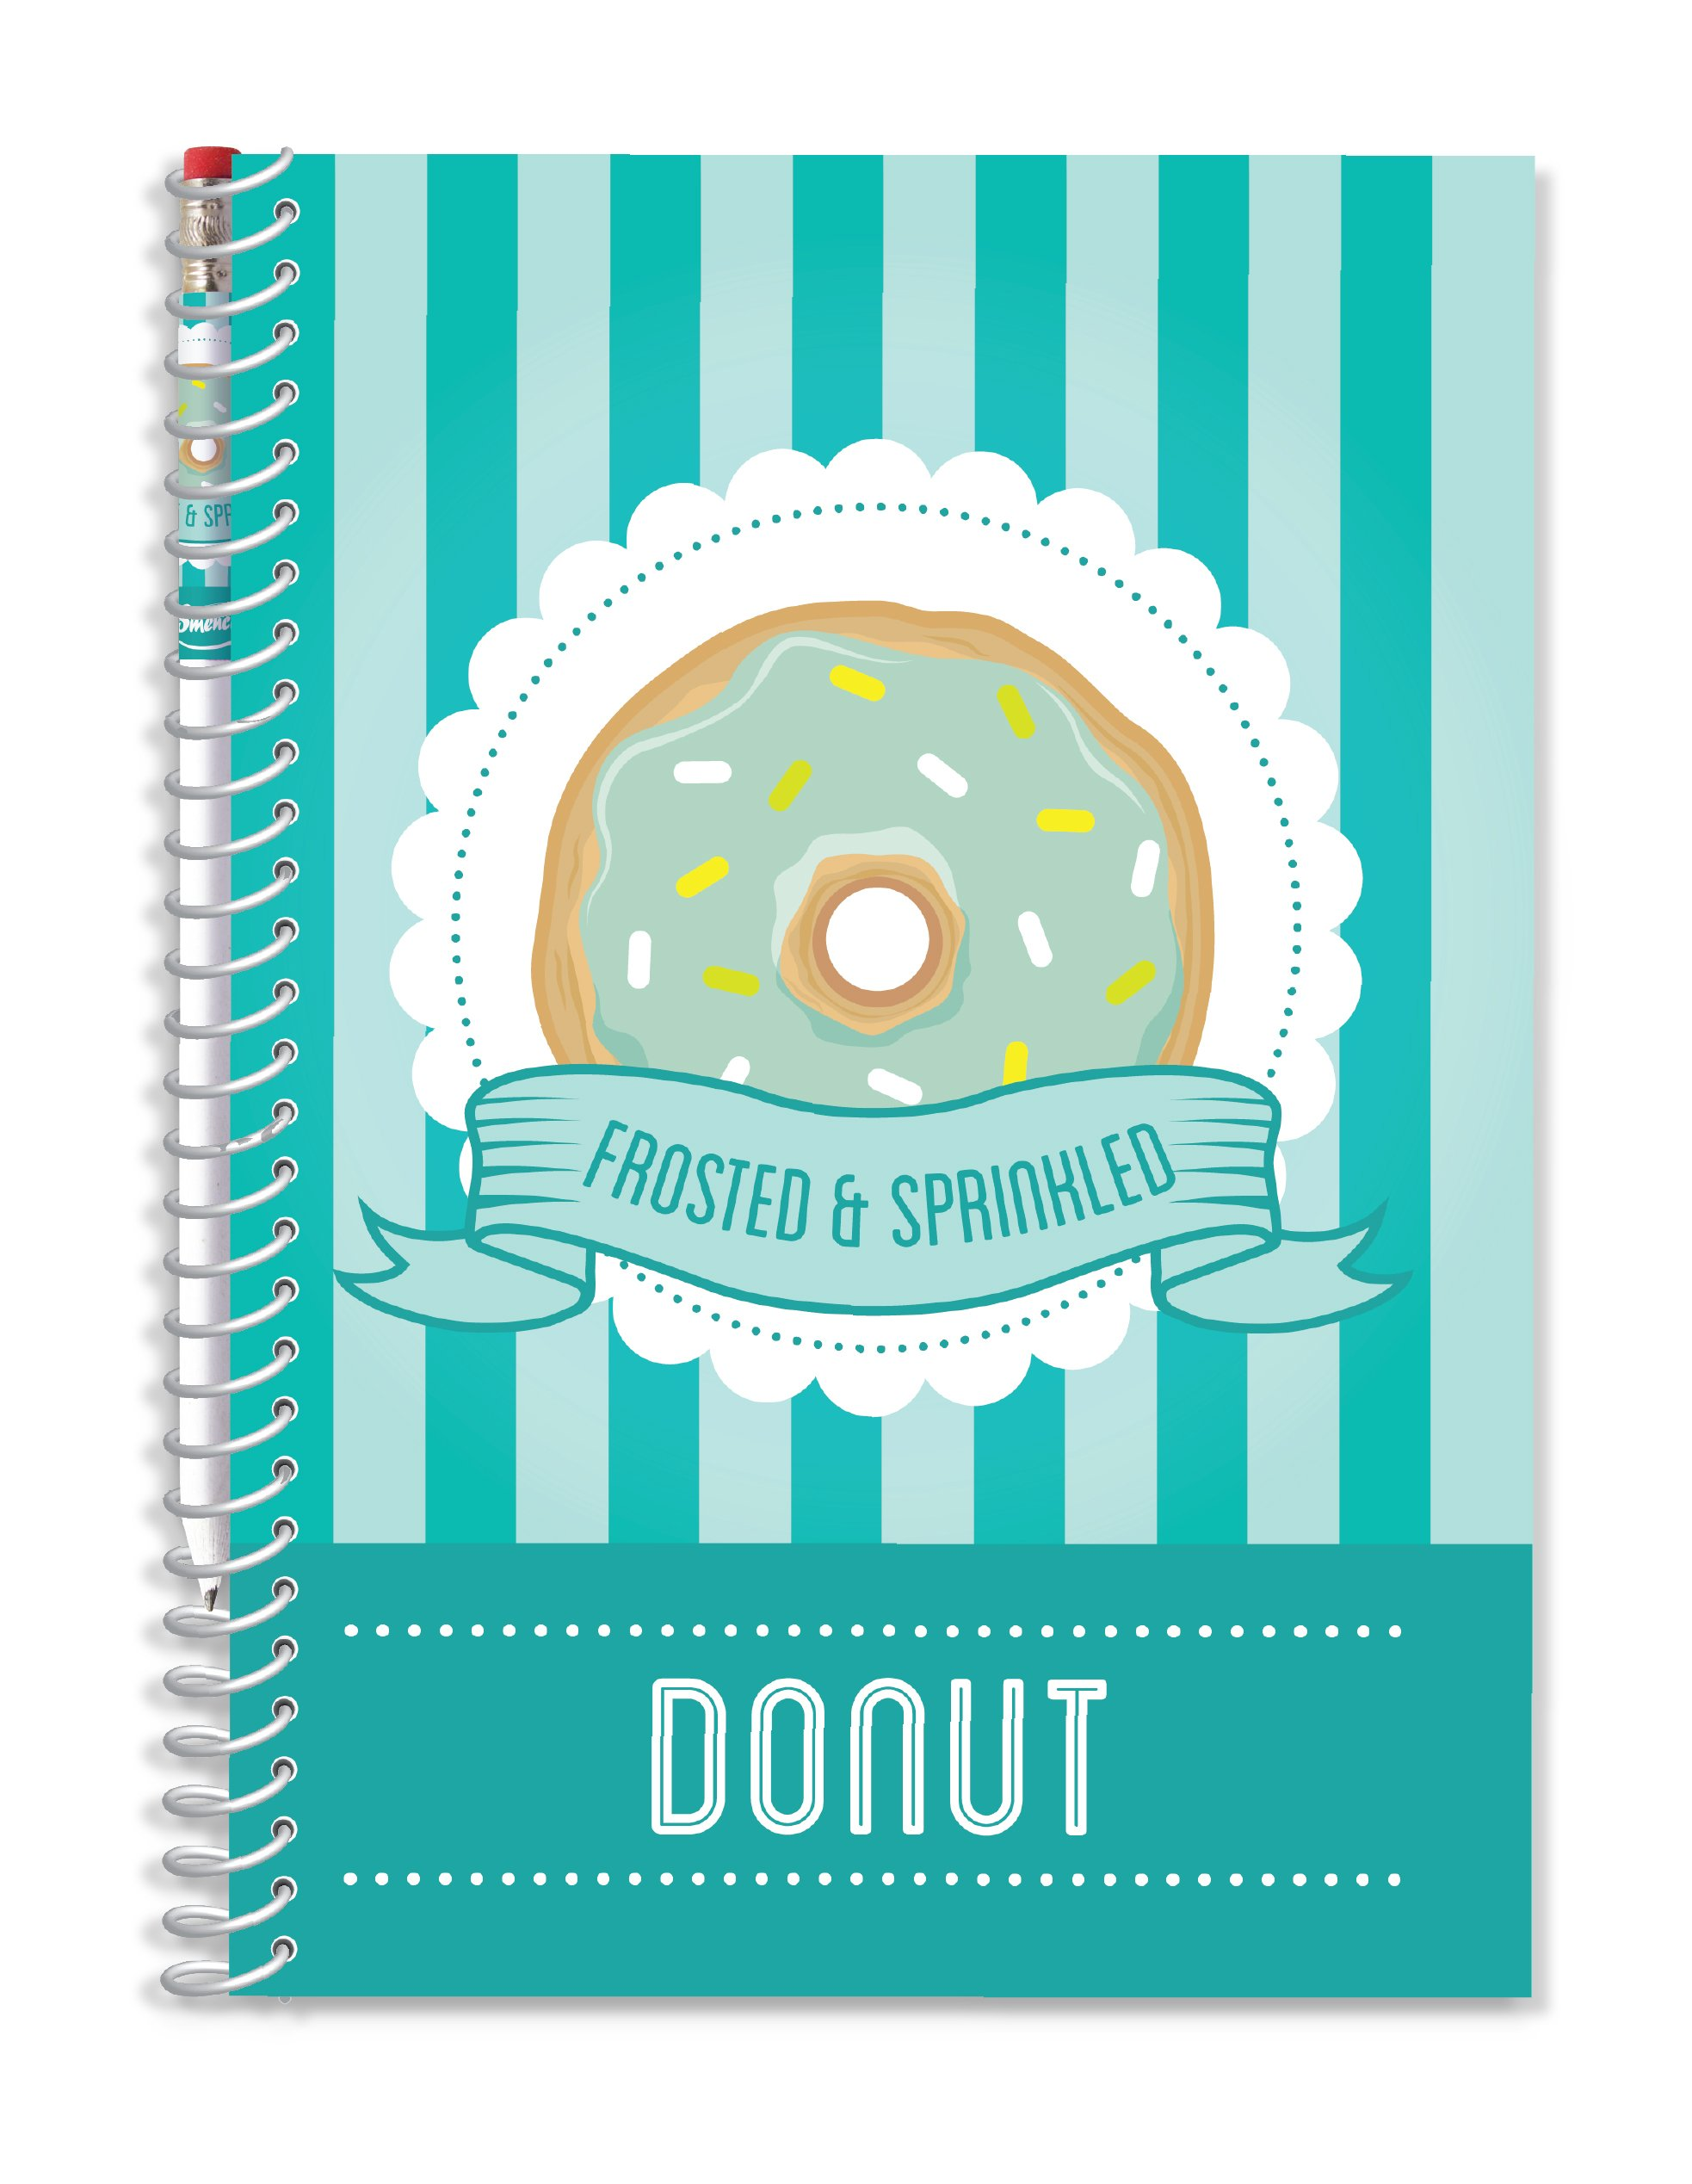 Scentco Sketch & Sniff Drawing Note Paper Pad - Gourmet Donut Scented Cover